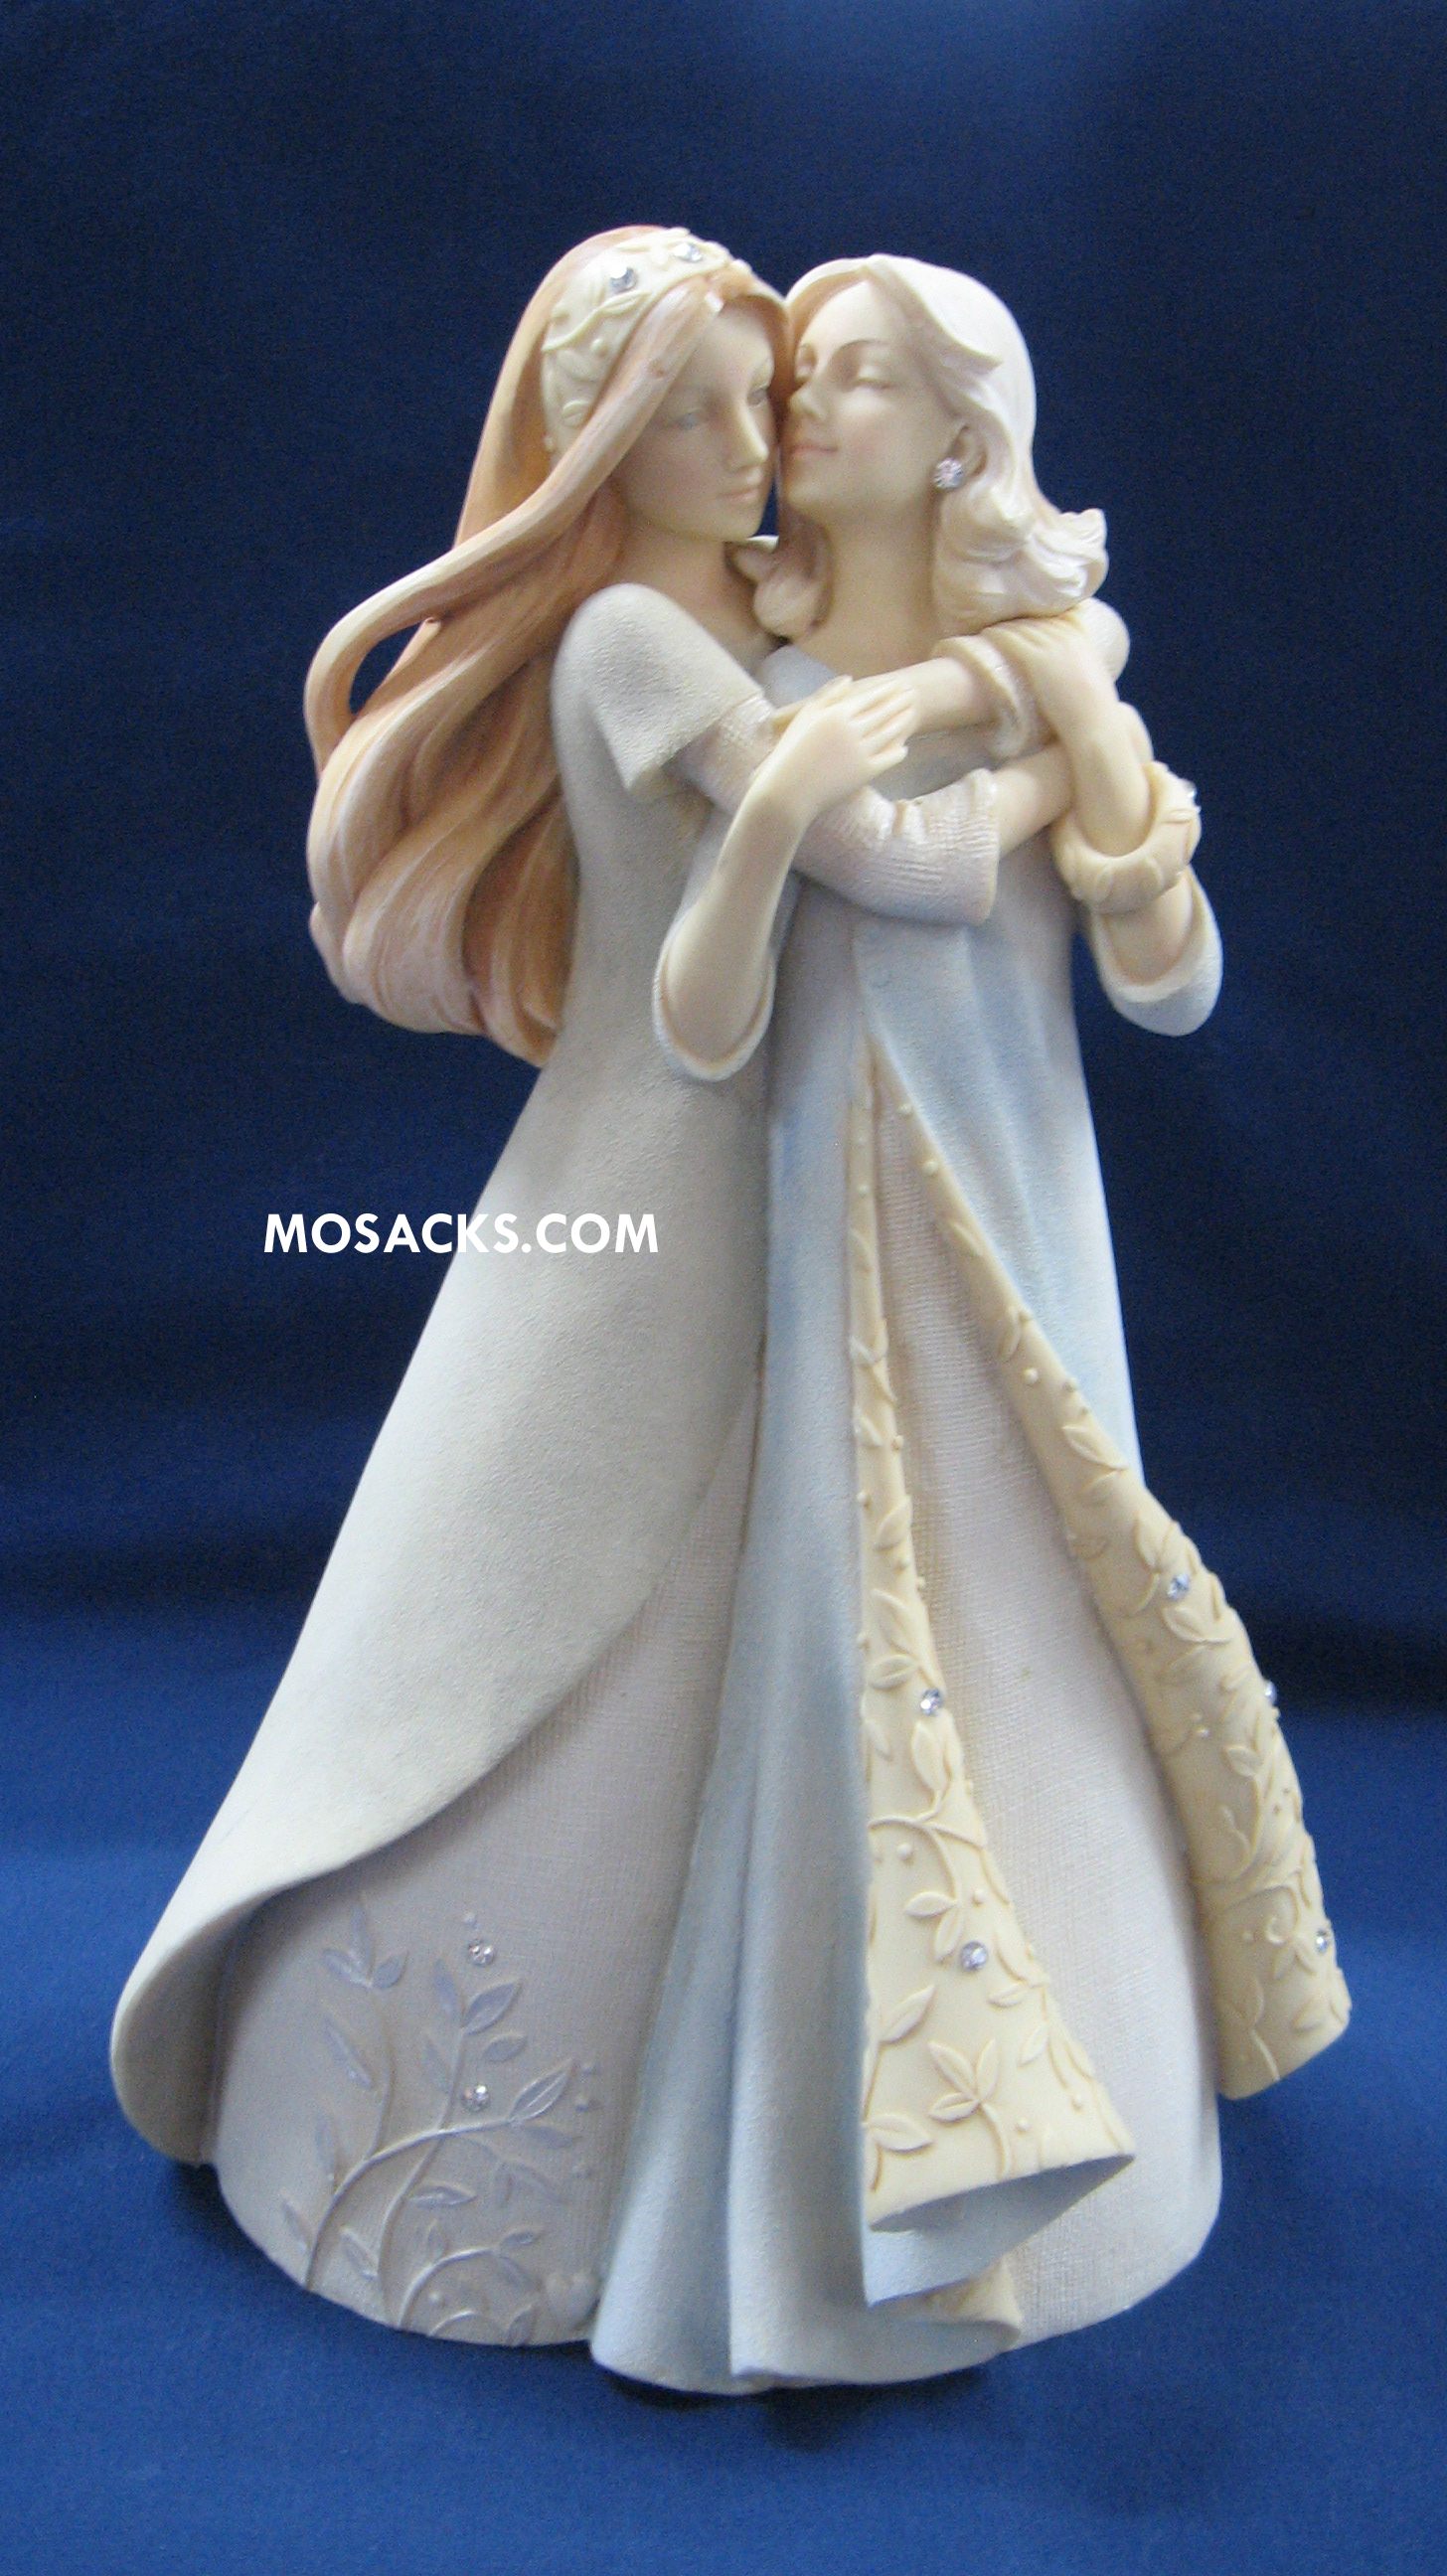 Foundations Mother Daughter Figurine 258-4044765